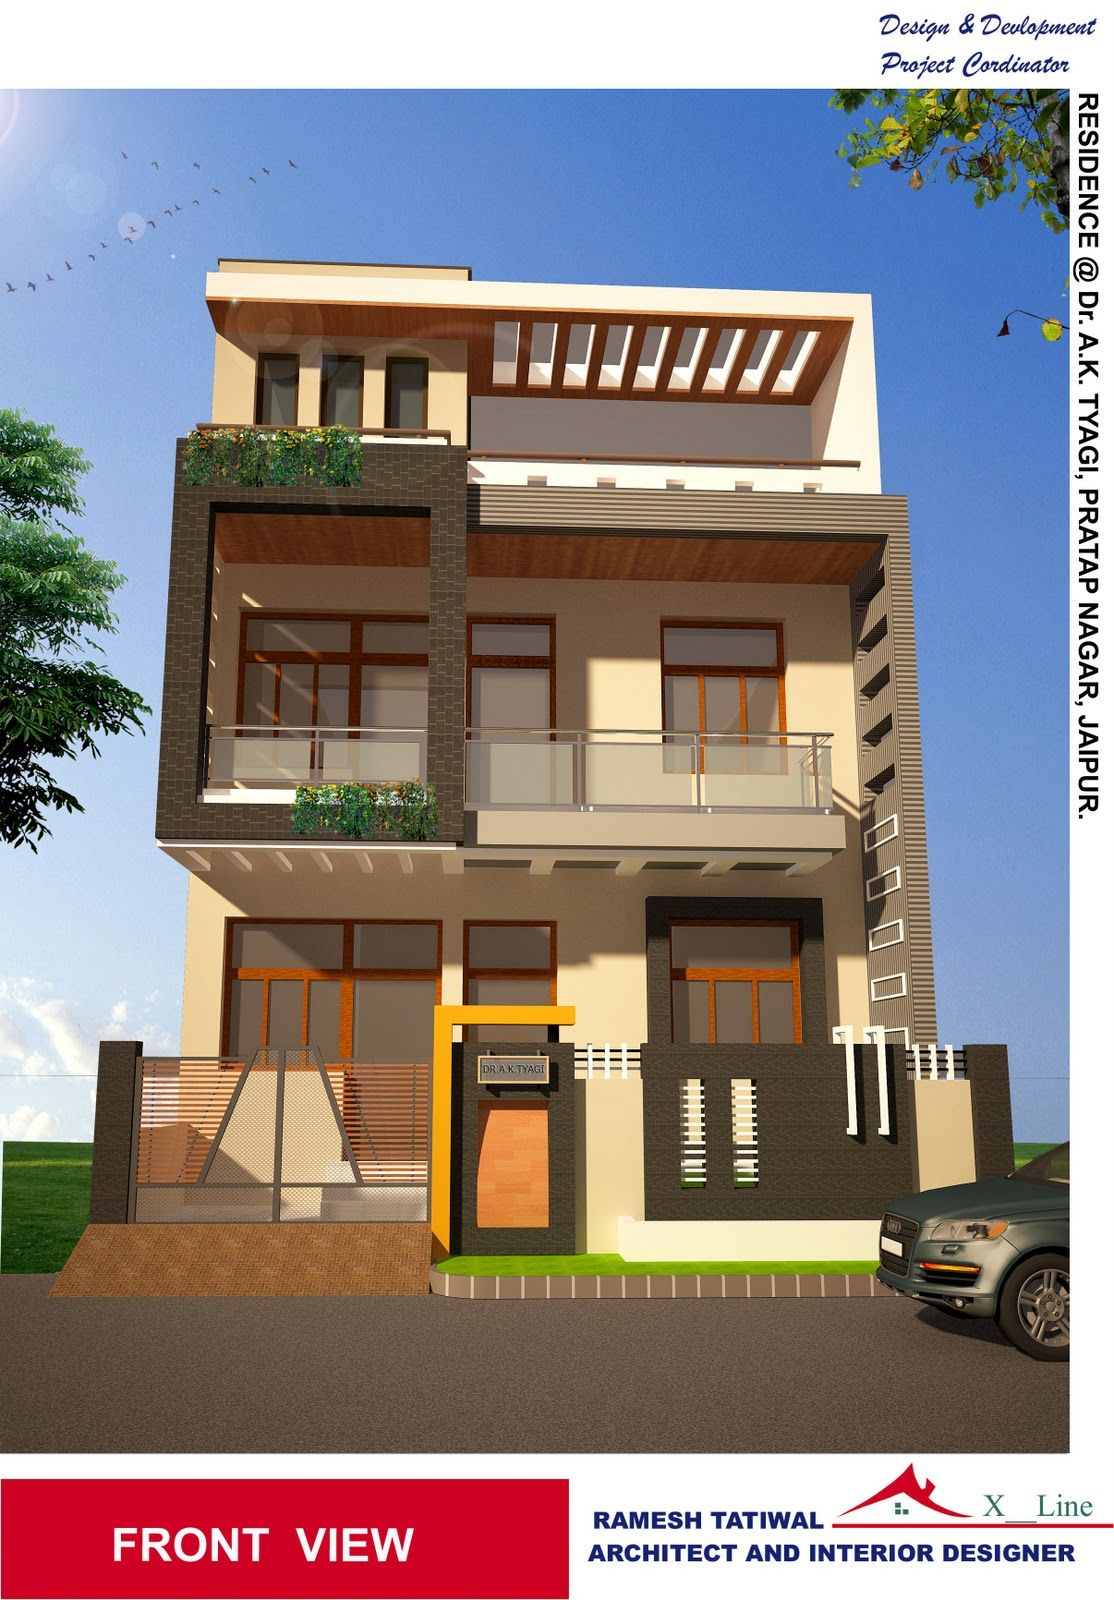 Housedesigns modern indian home architecture design from New home front design